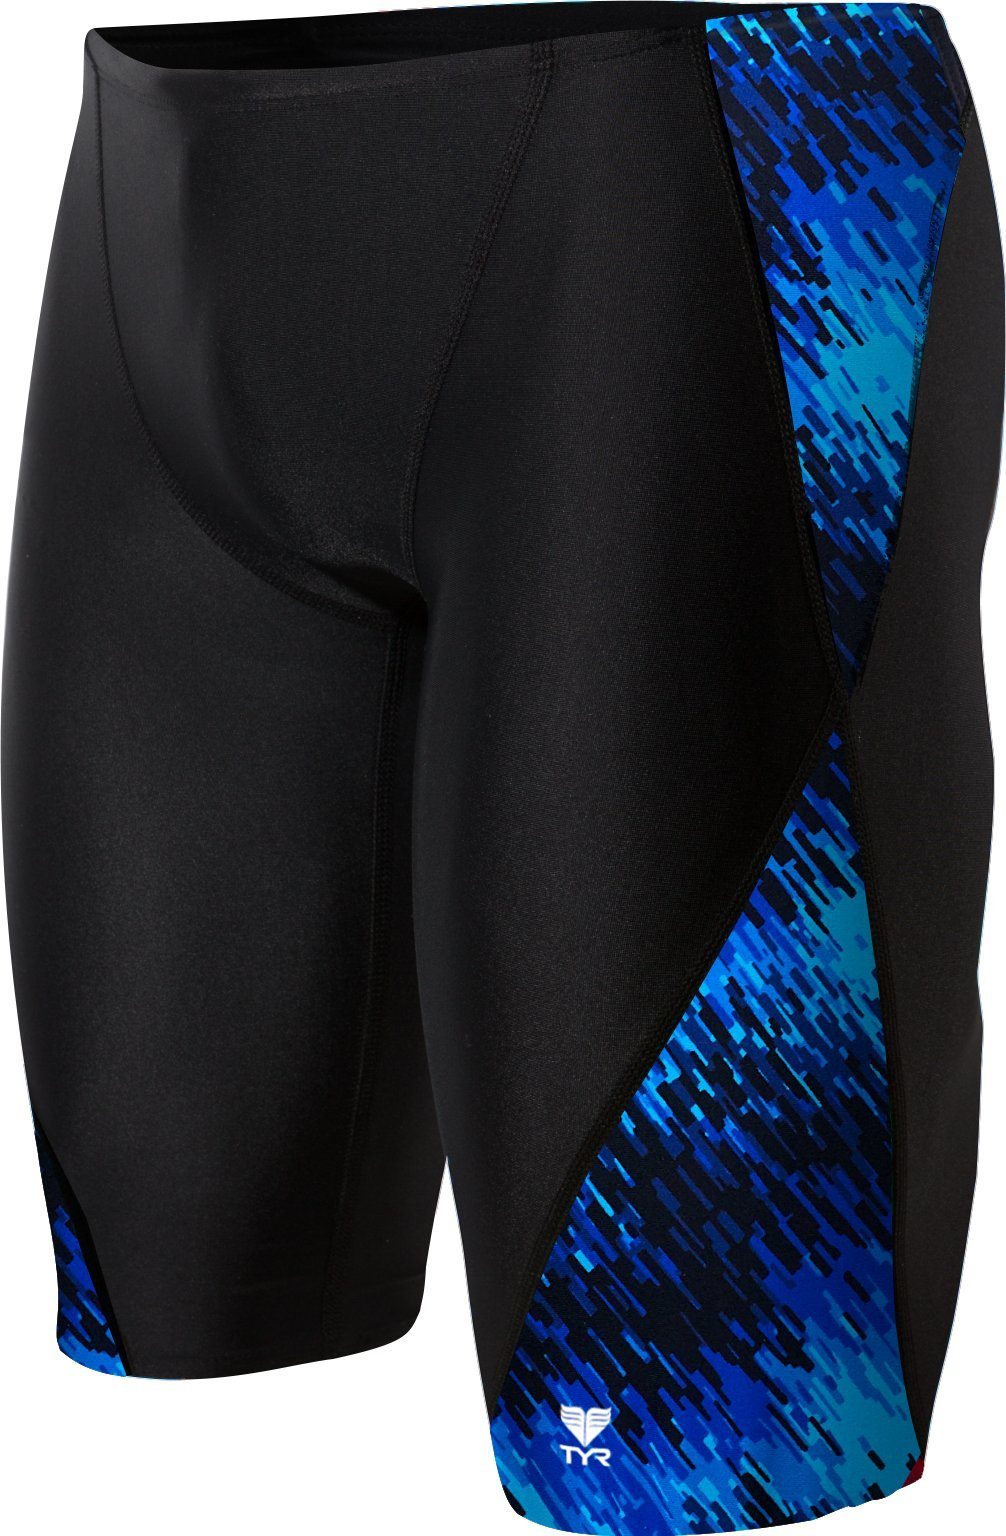 TYR Men's Perseus Jammer Swimsuit, Blue, 34 by TYR